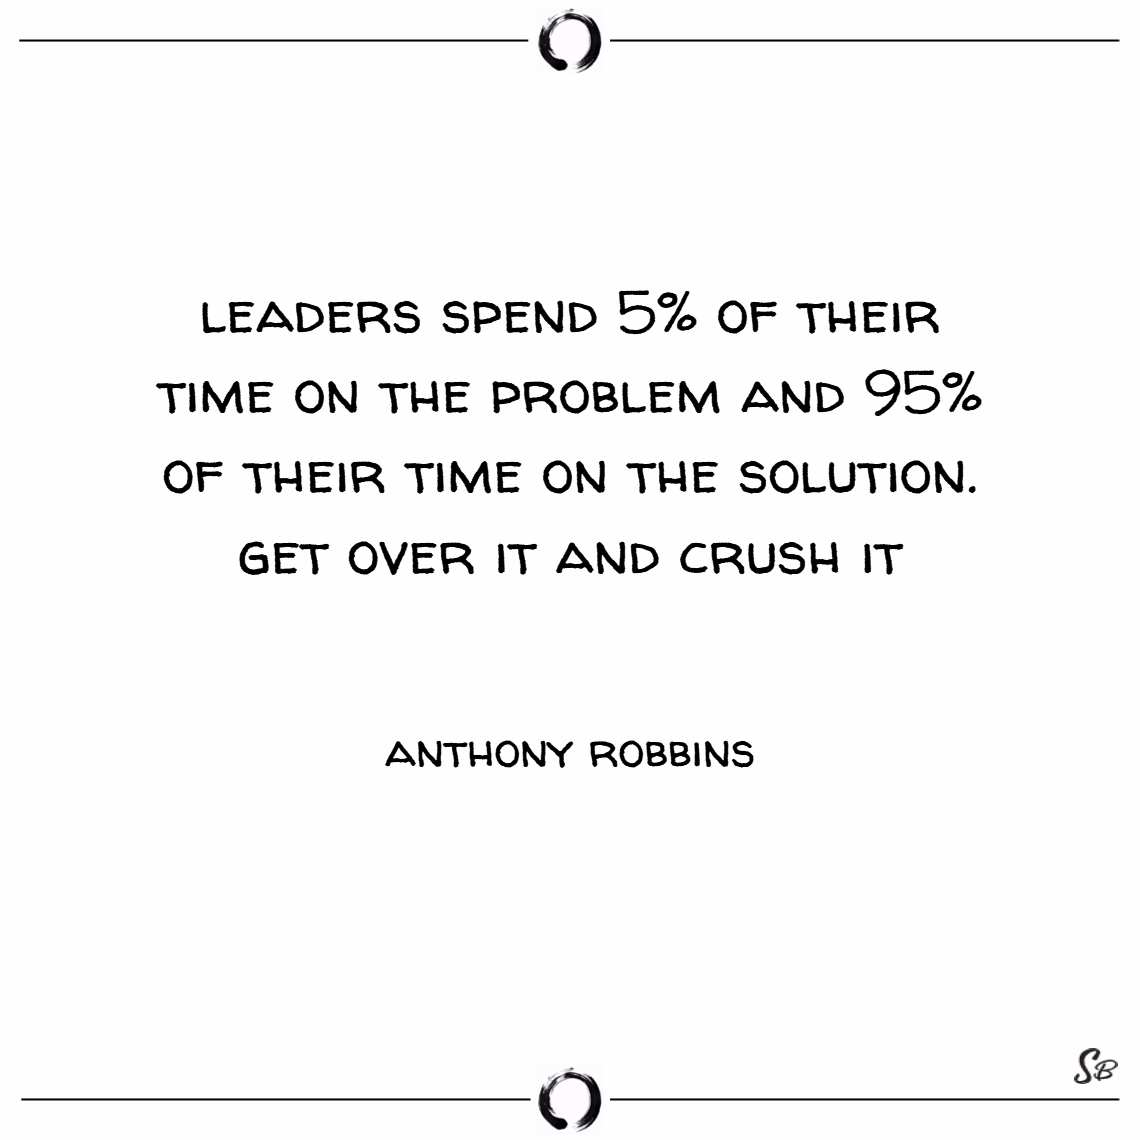 Leaders spend 5% of their time on the problem and